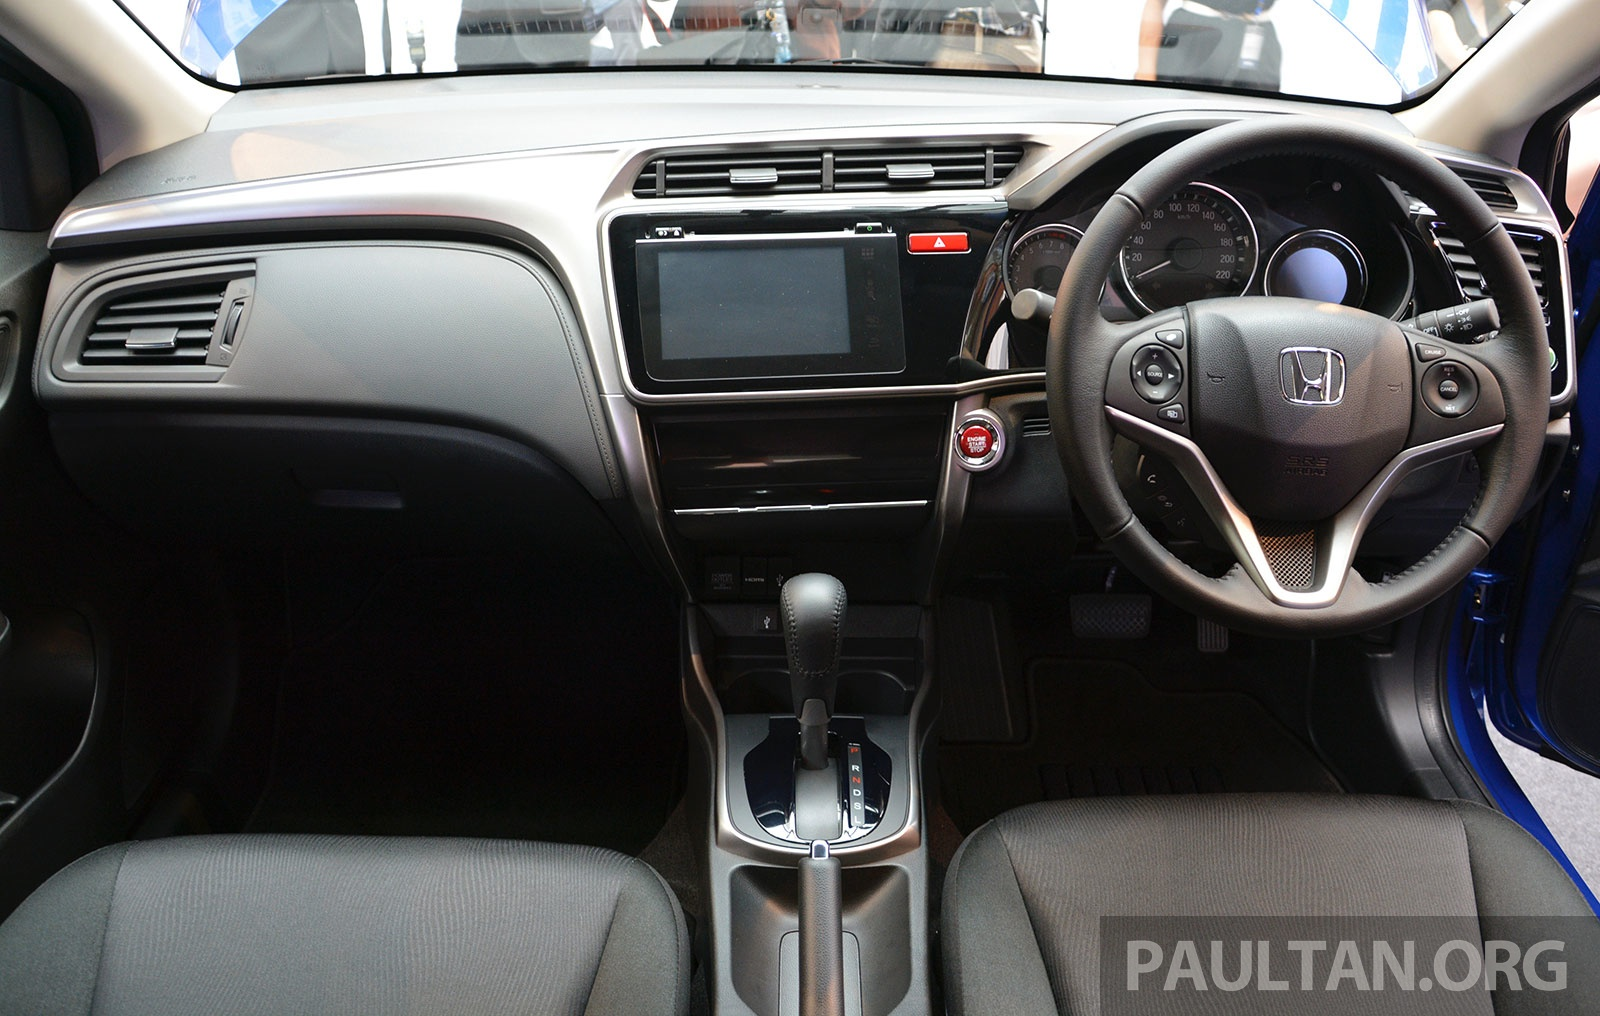 New 2014 Honda City Interiors